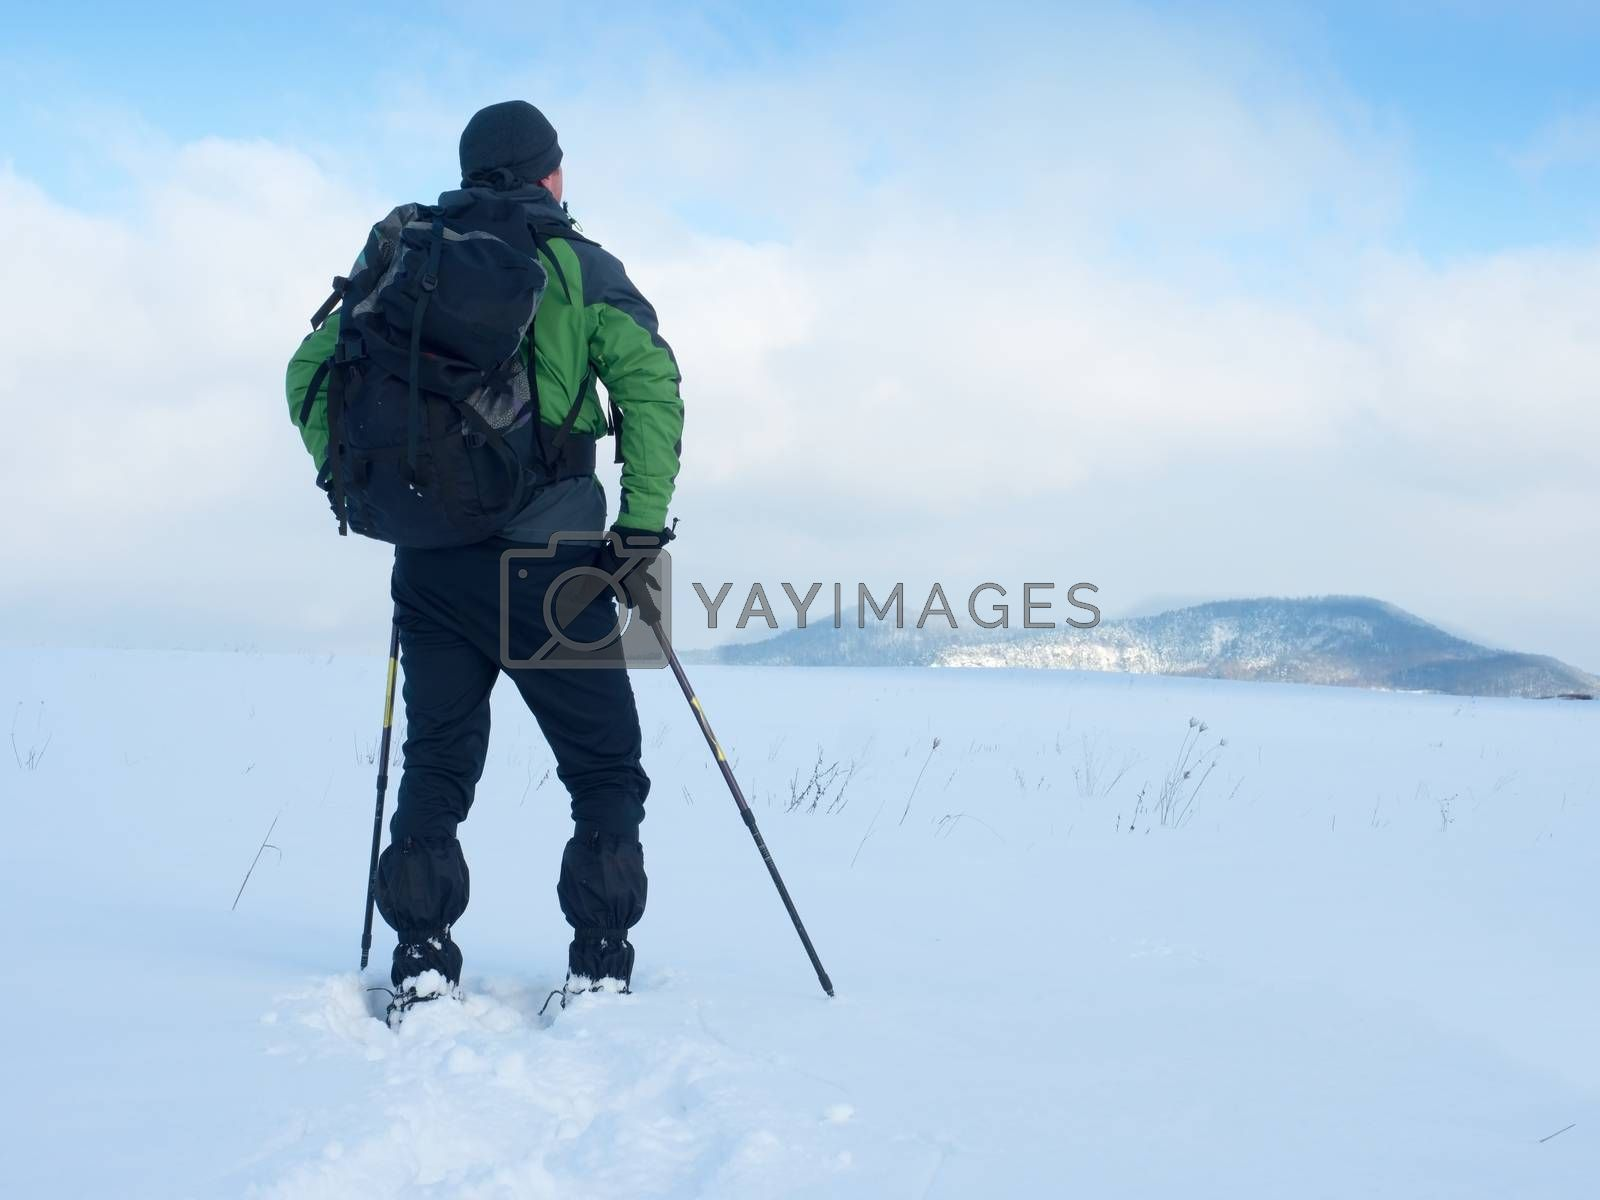 Man with snowshoes and backpack take a rest in snow. Hiker in winter jacket and trekking trousers snowshoeing in powder snow. Cloudy winter day, gentle wind brings small snow flakes